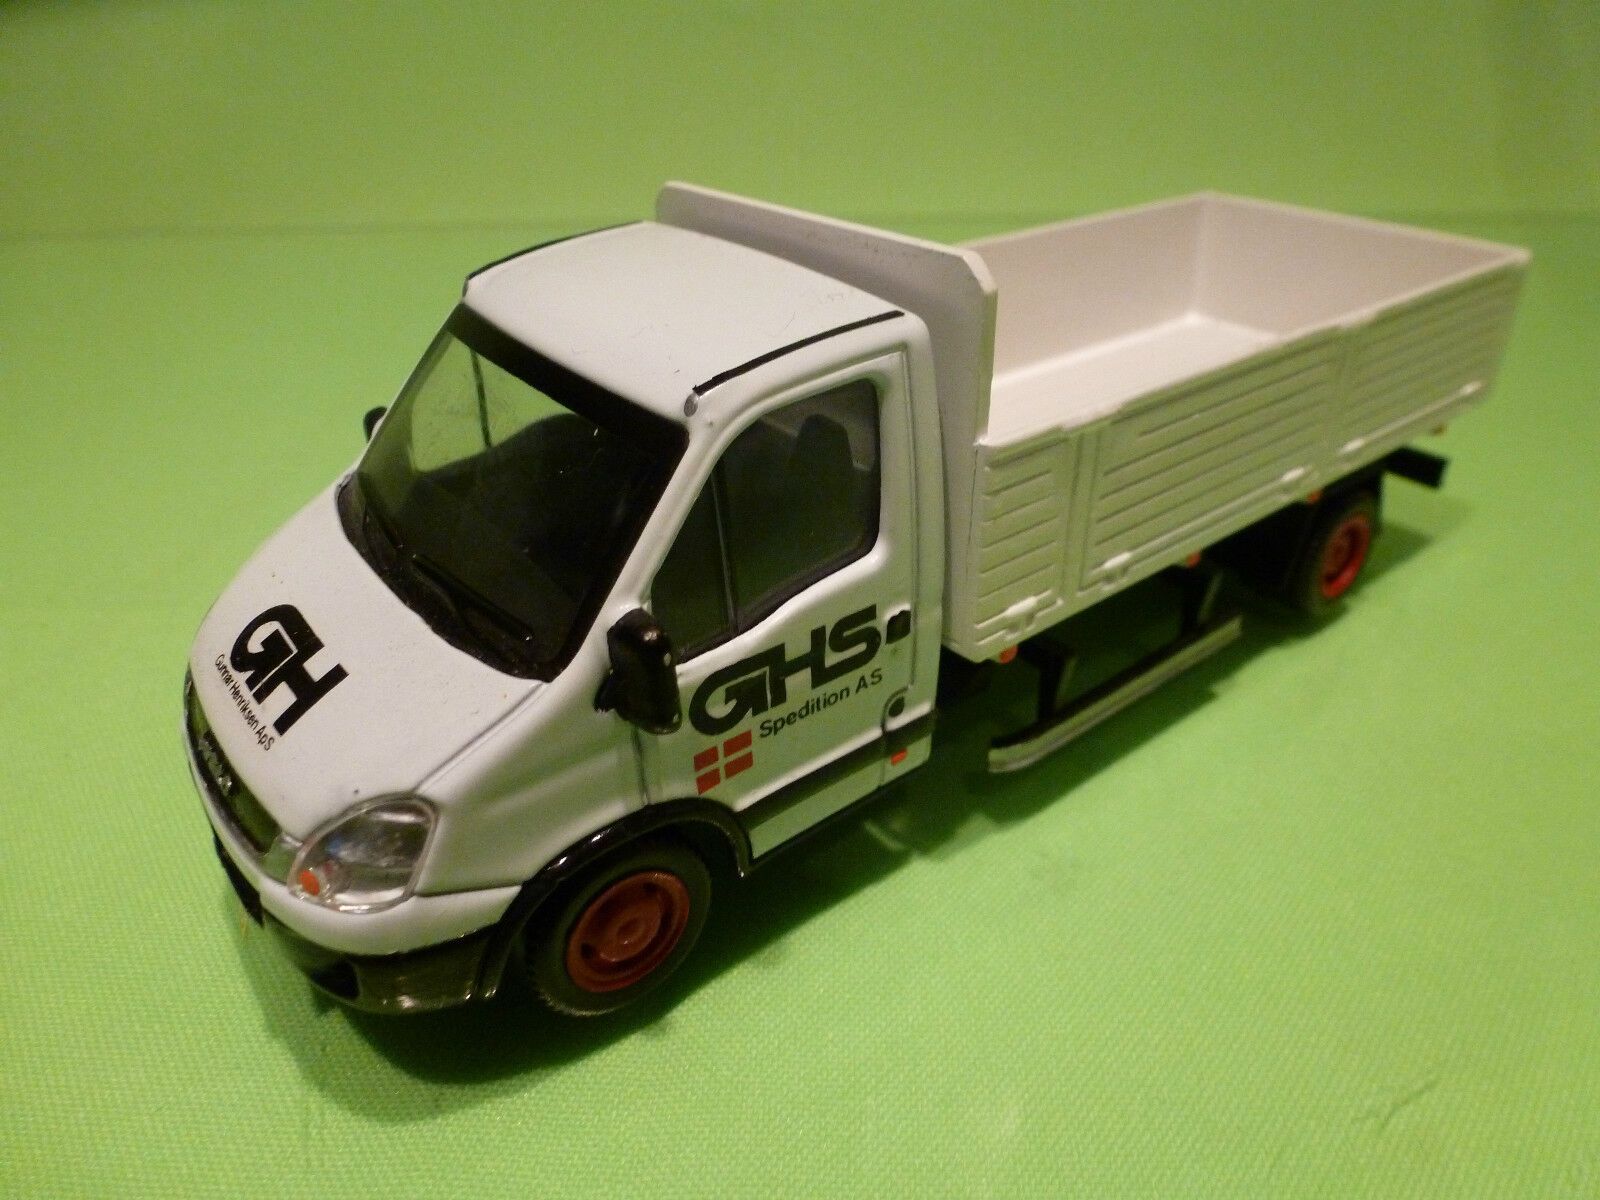 MONDO MOTORS IVECO DAILY + LION CAR FLAT BED - GHS 1 43 - GC - SPECIAL MADE